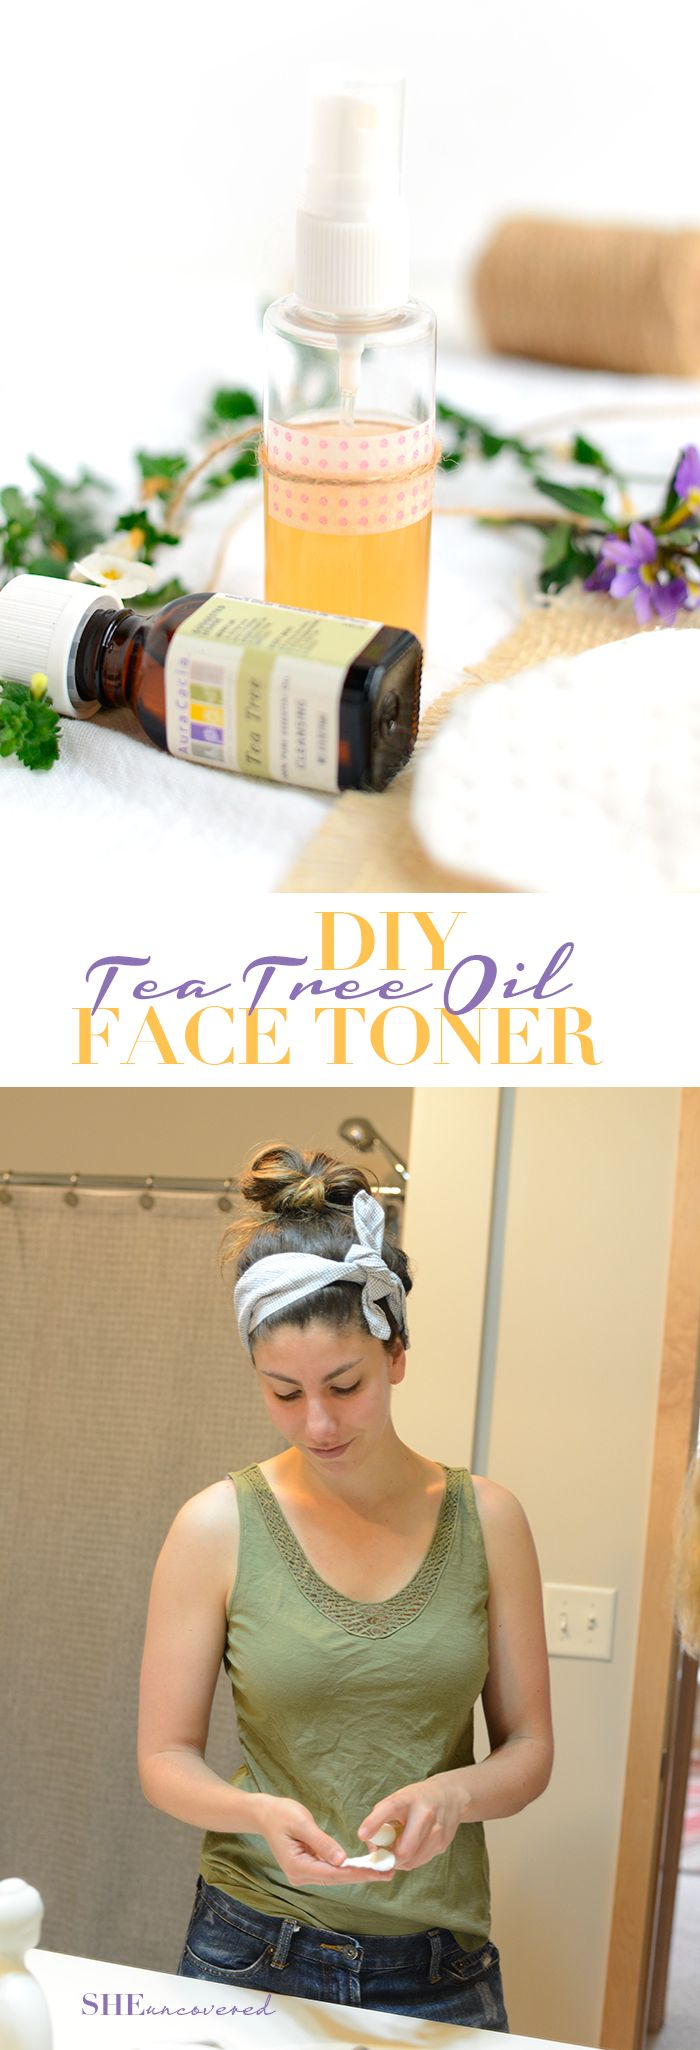 Toner or Hand Sanitizer Just 3 simple ingredients is all you need to make this DIY Tea Tree Oil Face Toner {All-Natural!}. Most people skip toning their skin, but it is so important! Learn why and how to make your own natural version here!